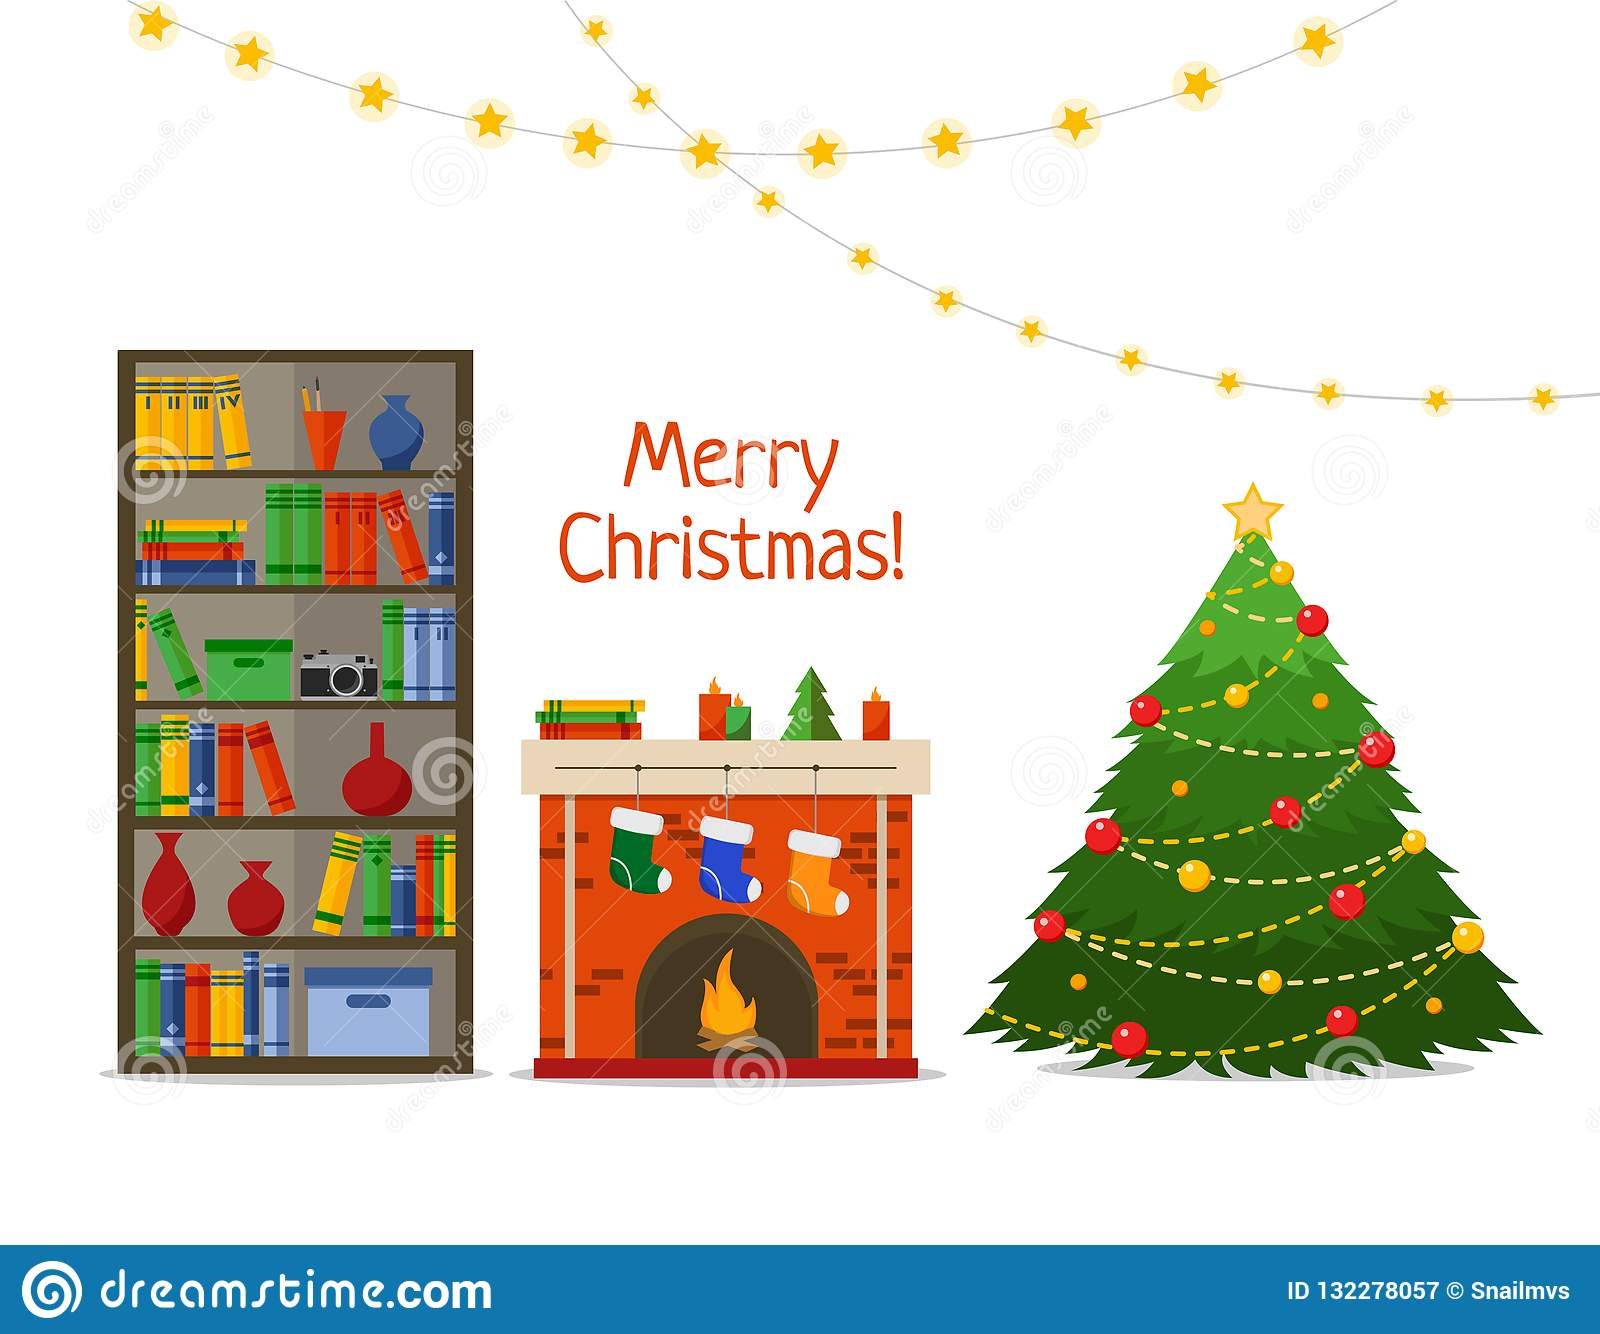 Christmas room interior. Christmas tree and fireplace with gifts, socks in library, Flat style vector illustration.